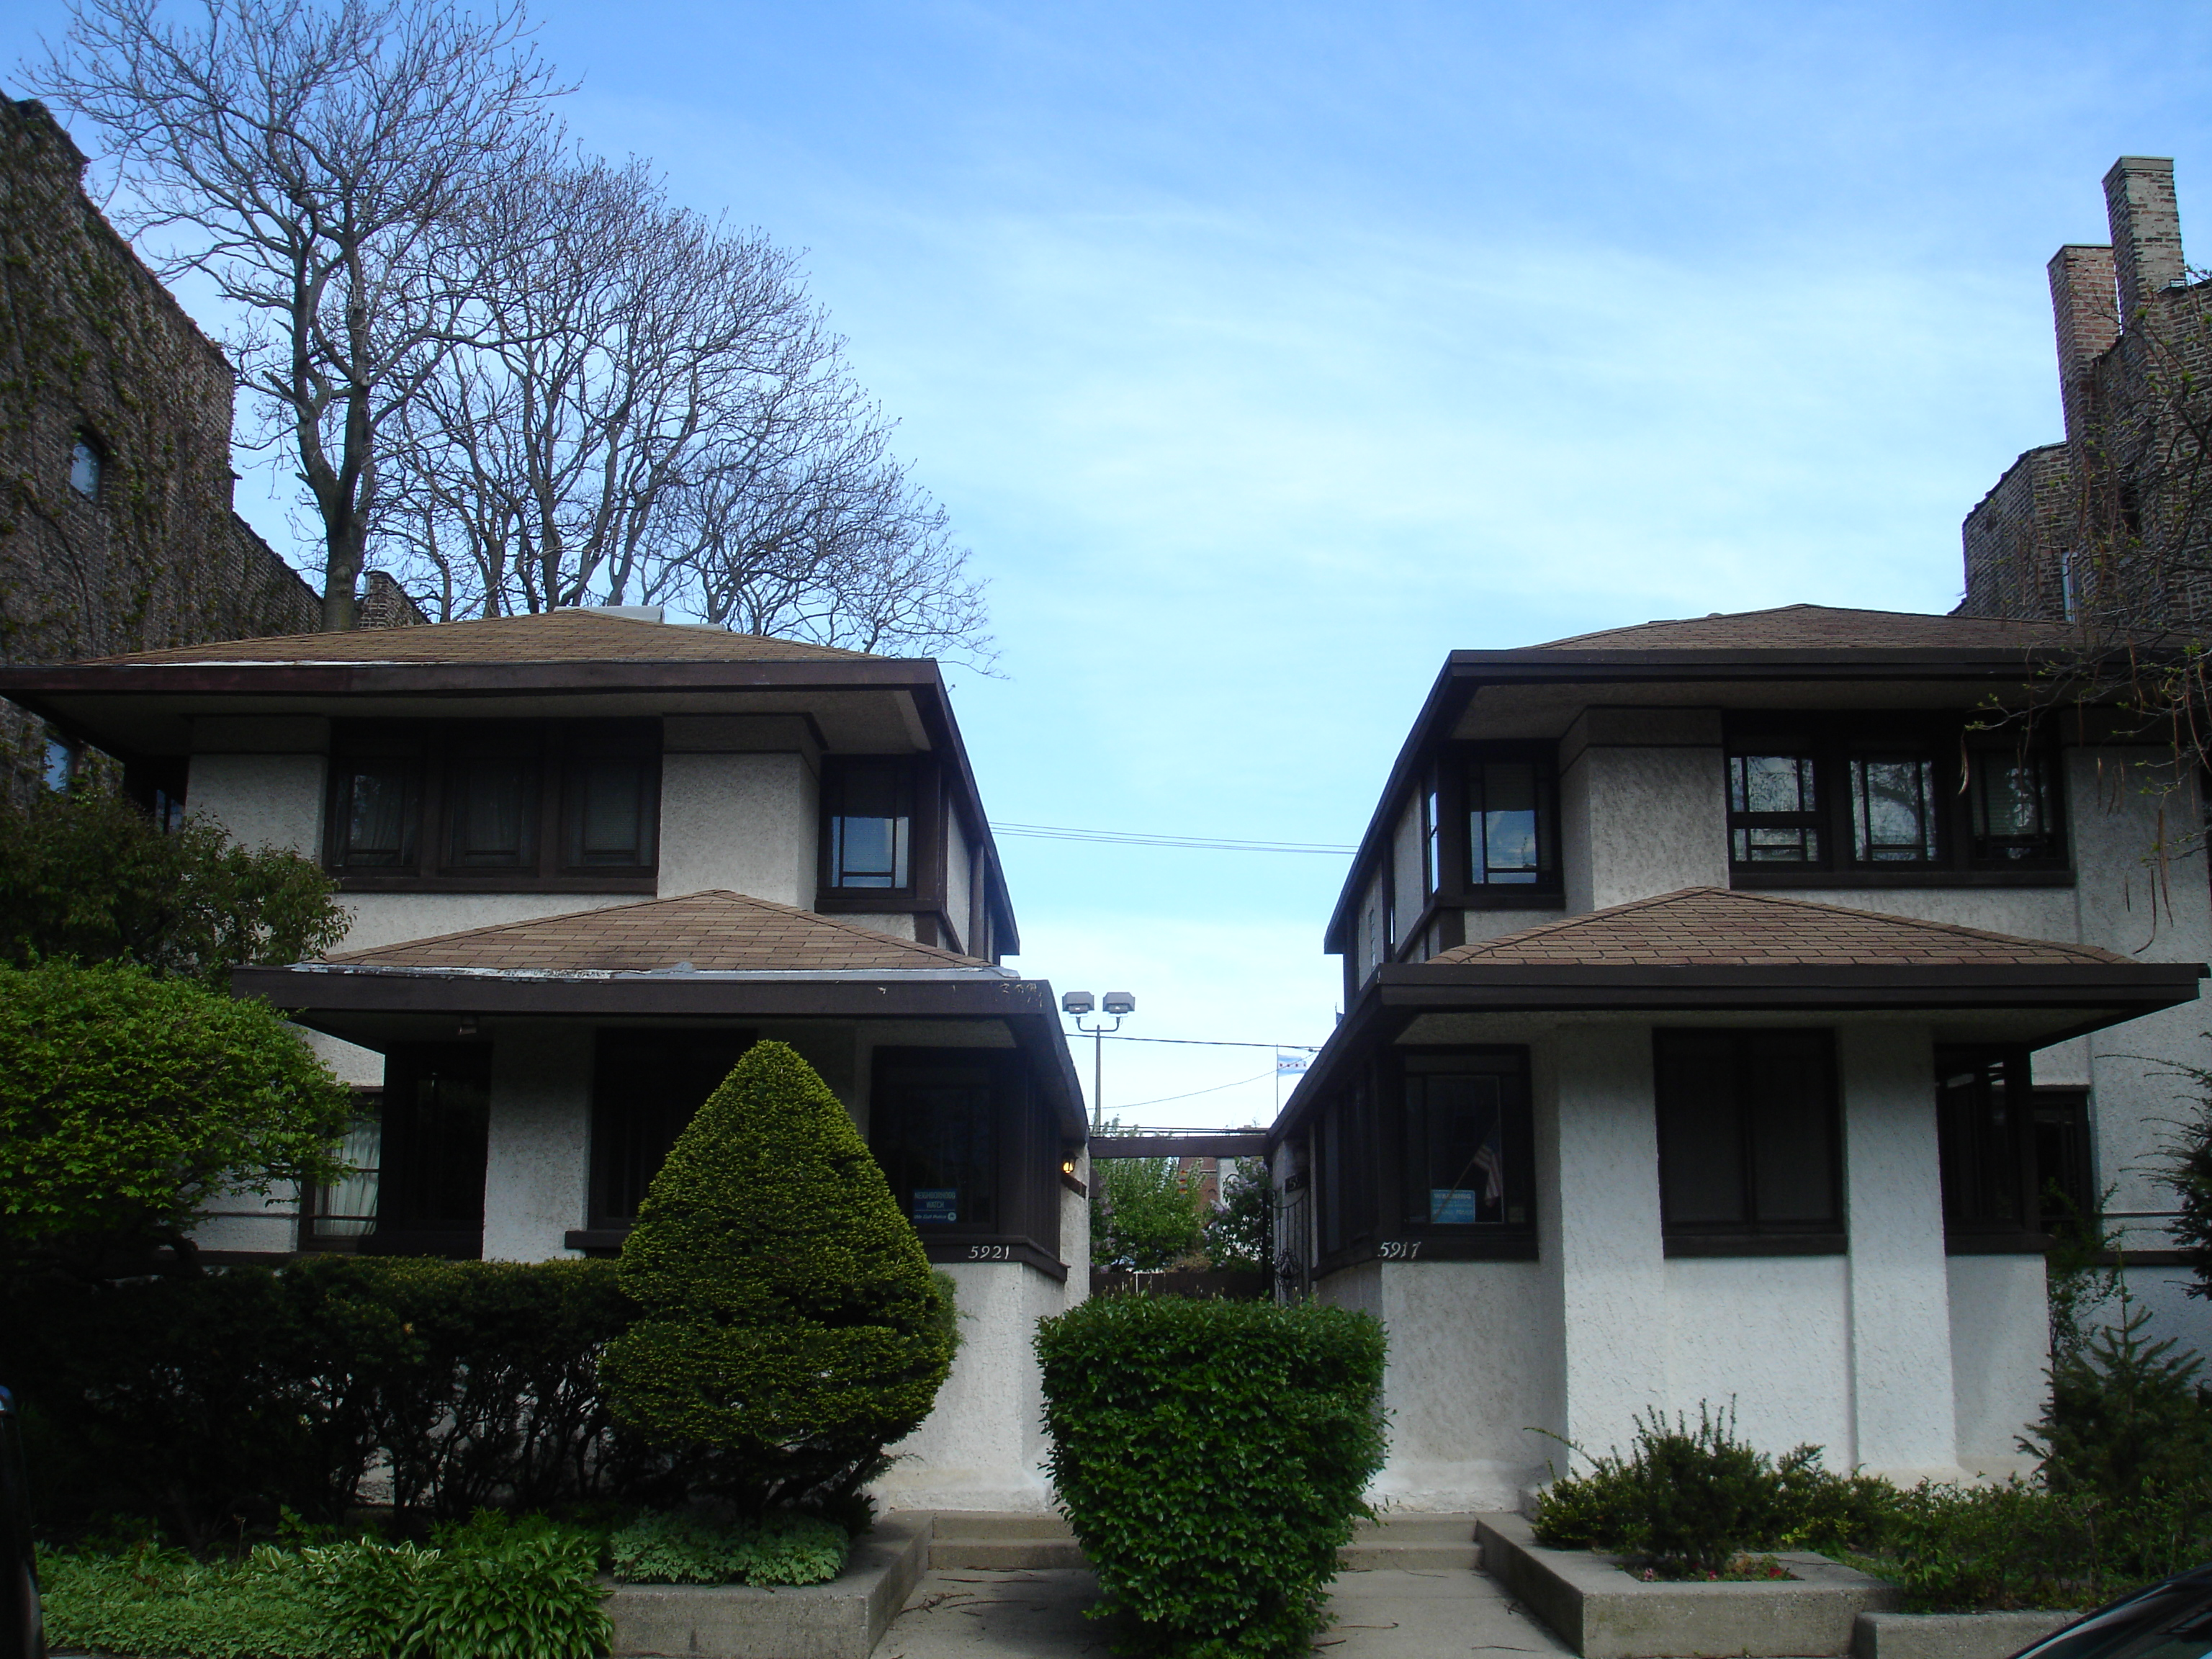 FileChicago Illinois Gauler Twin Houses 1jpg